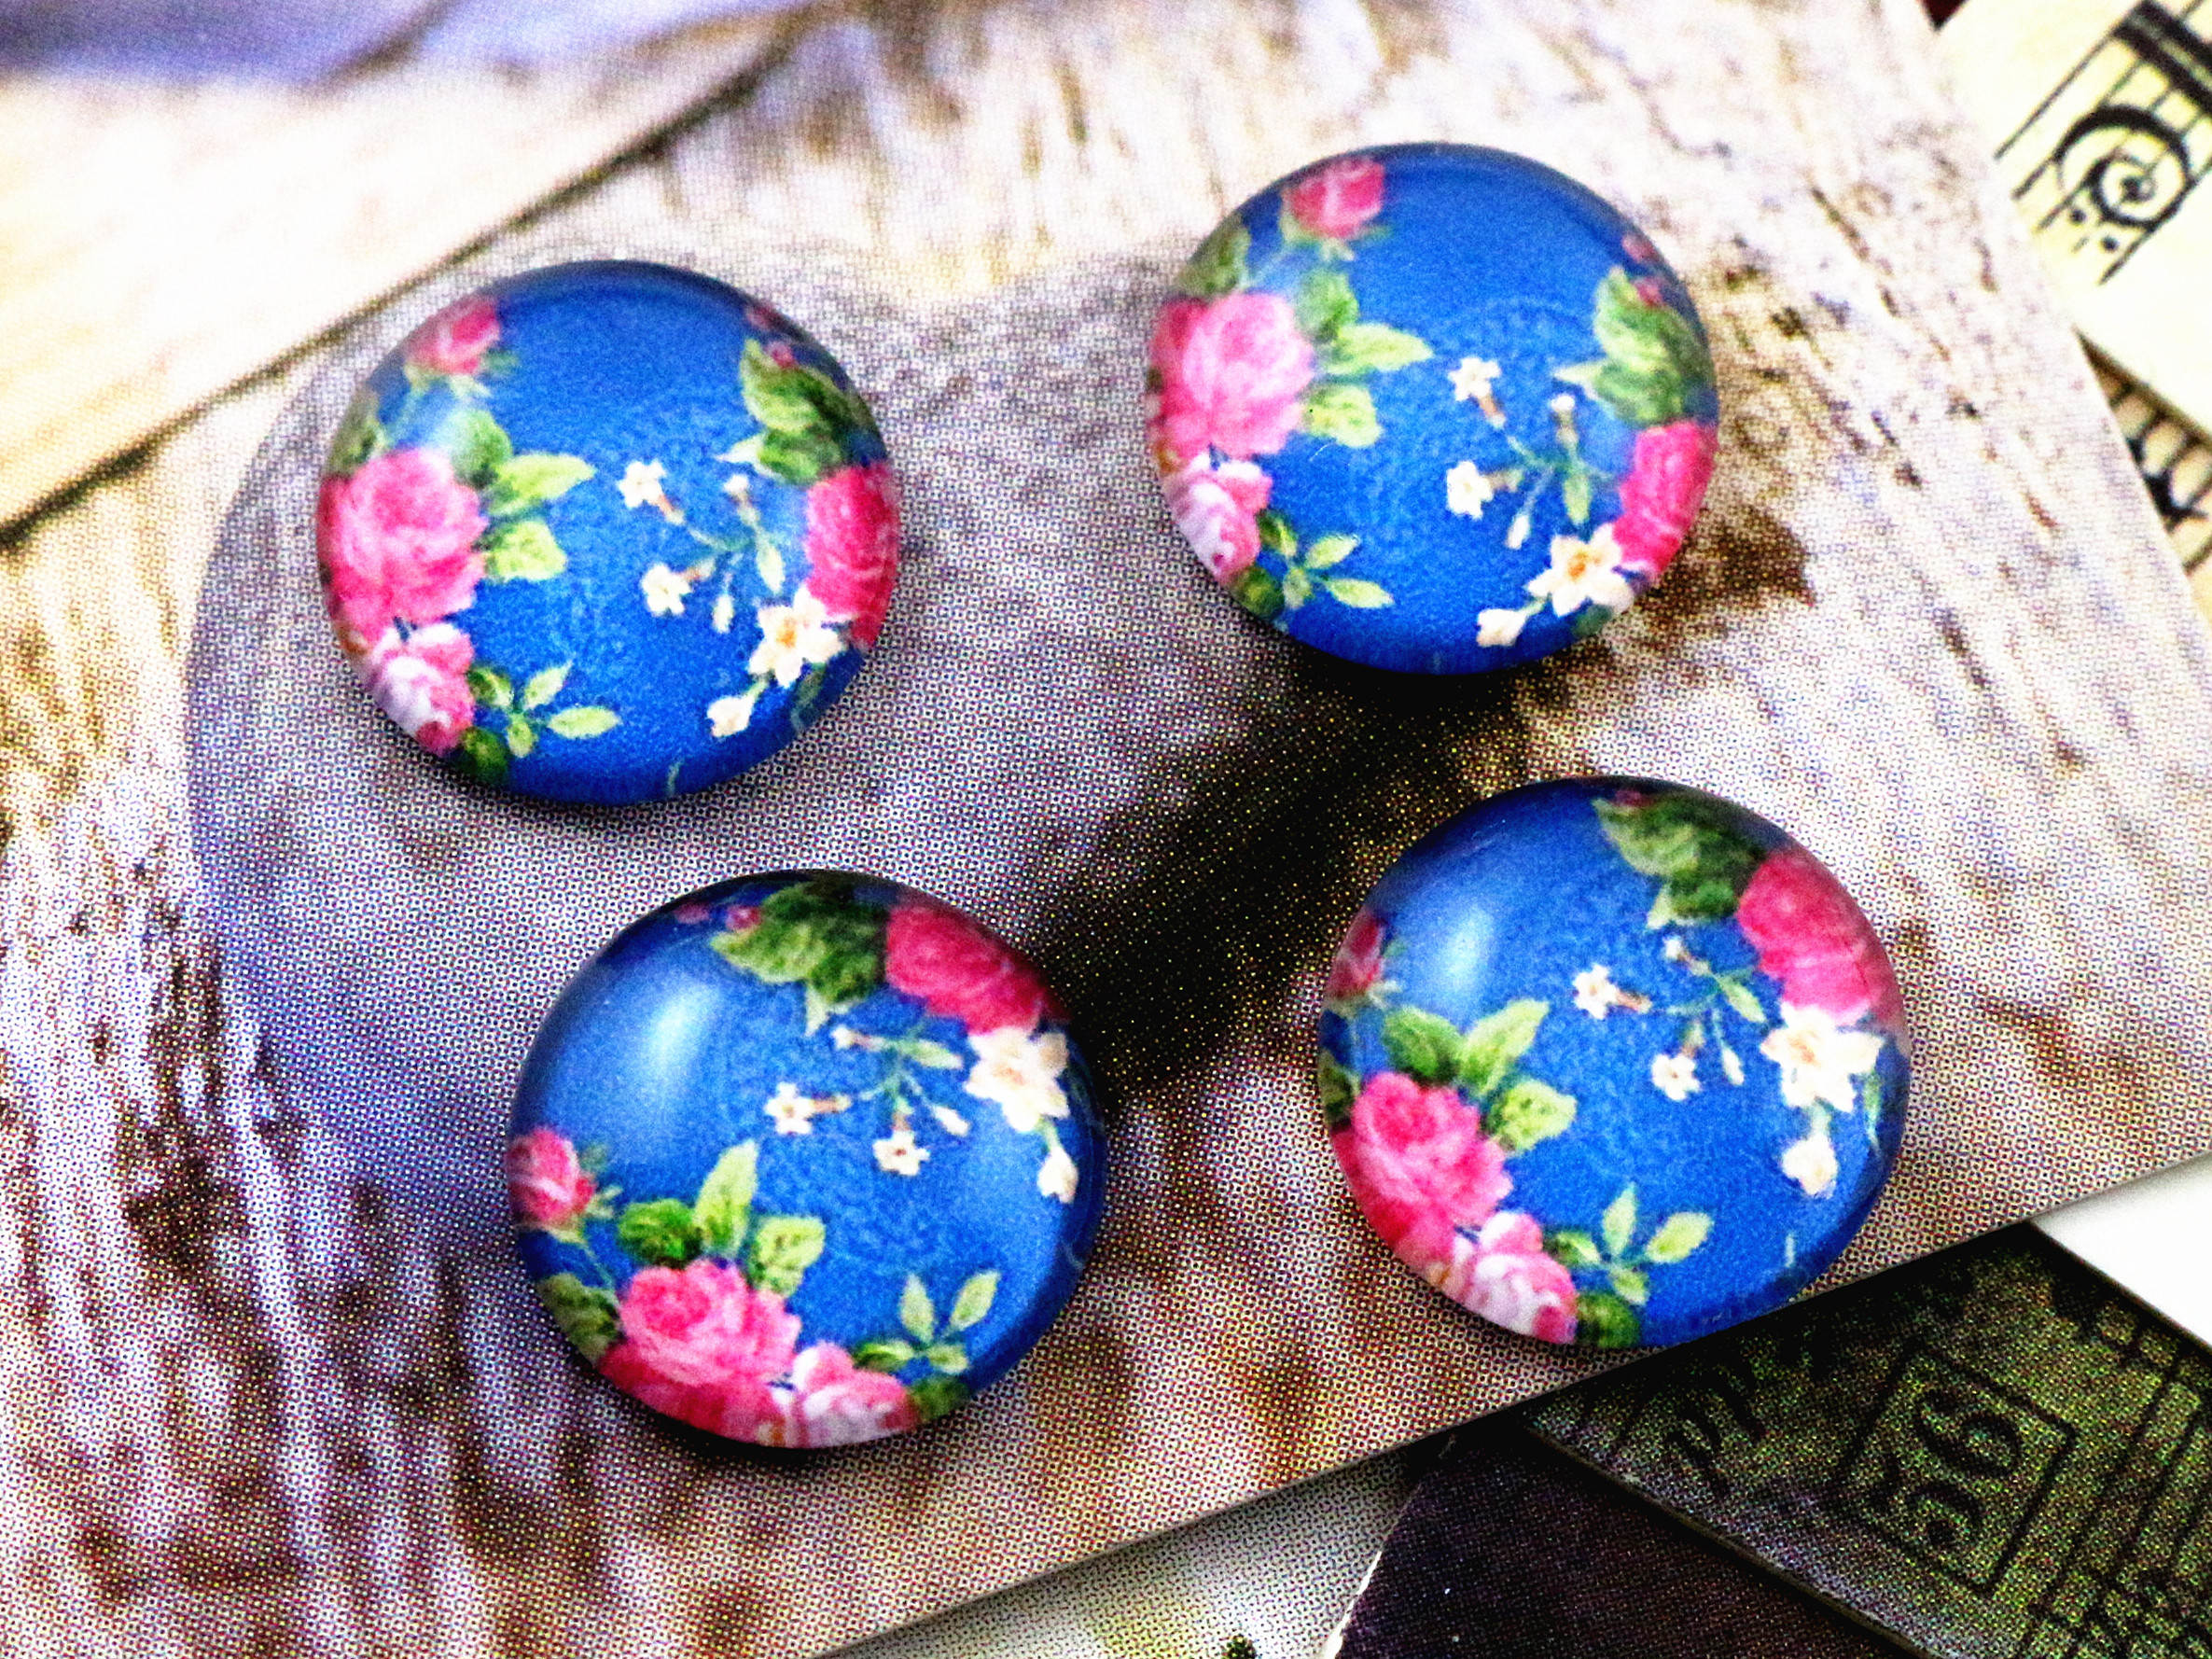 New Fashion  20pcs 12mm Handmade Photo Glass Cabochons   (E7-64)New Fashion  20pcs 12mm Handmade Photo Glass Cabochons   (E7-64)